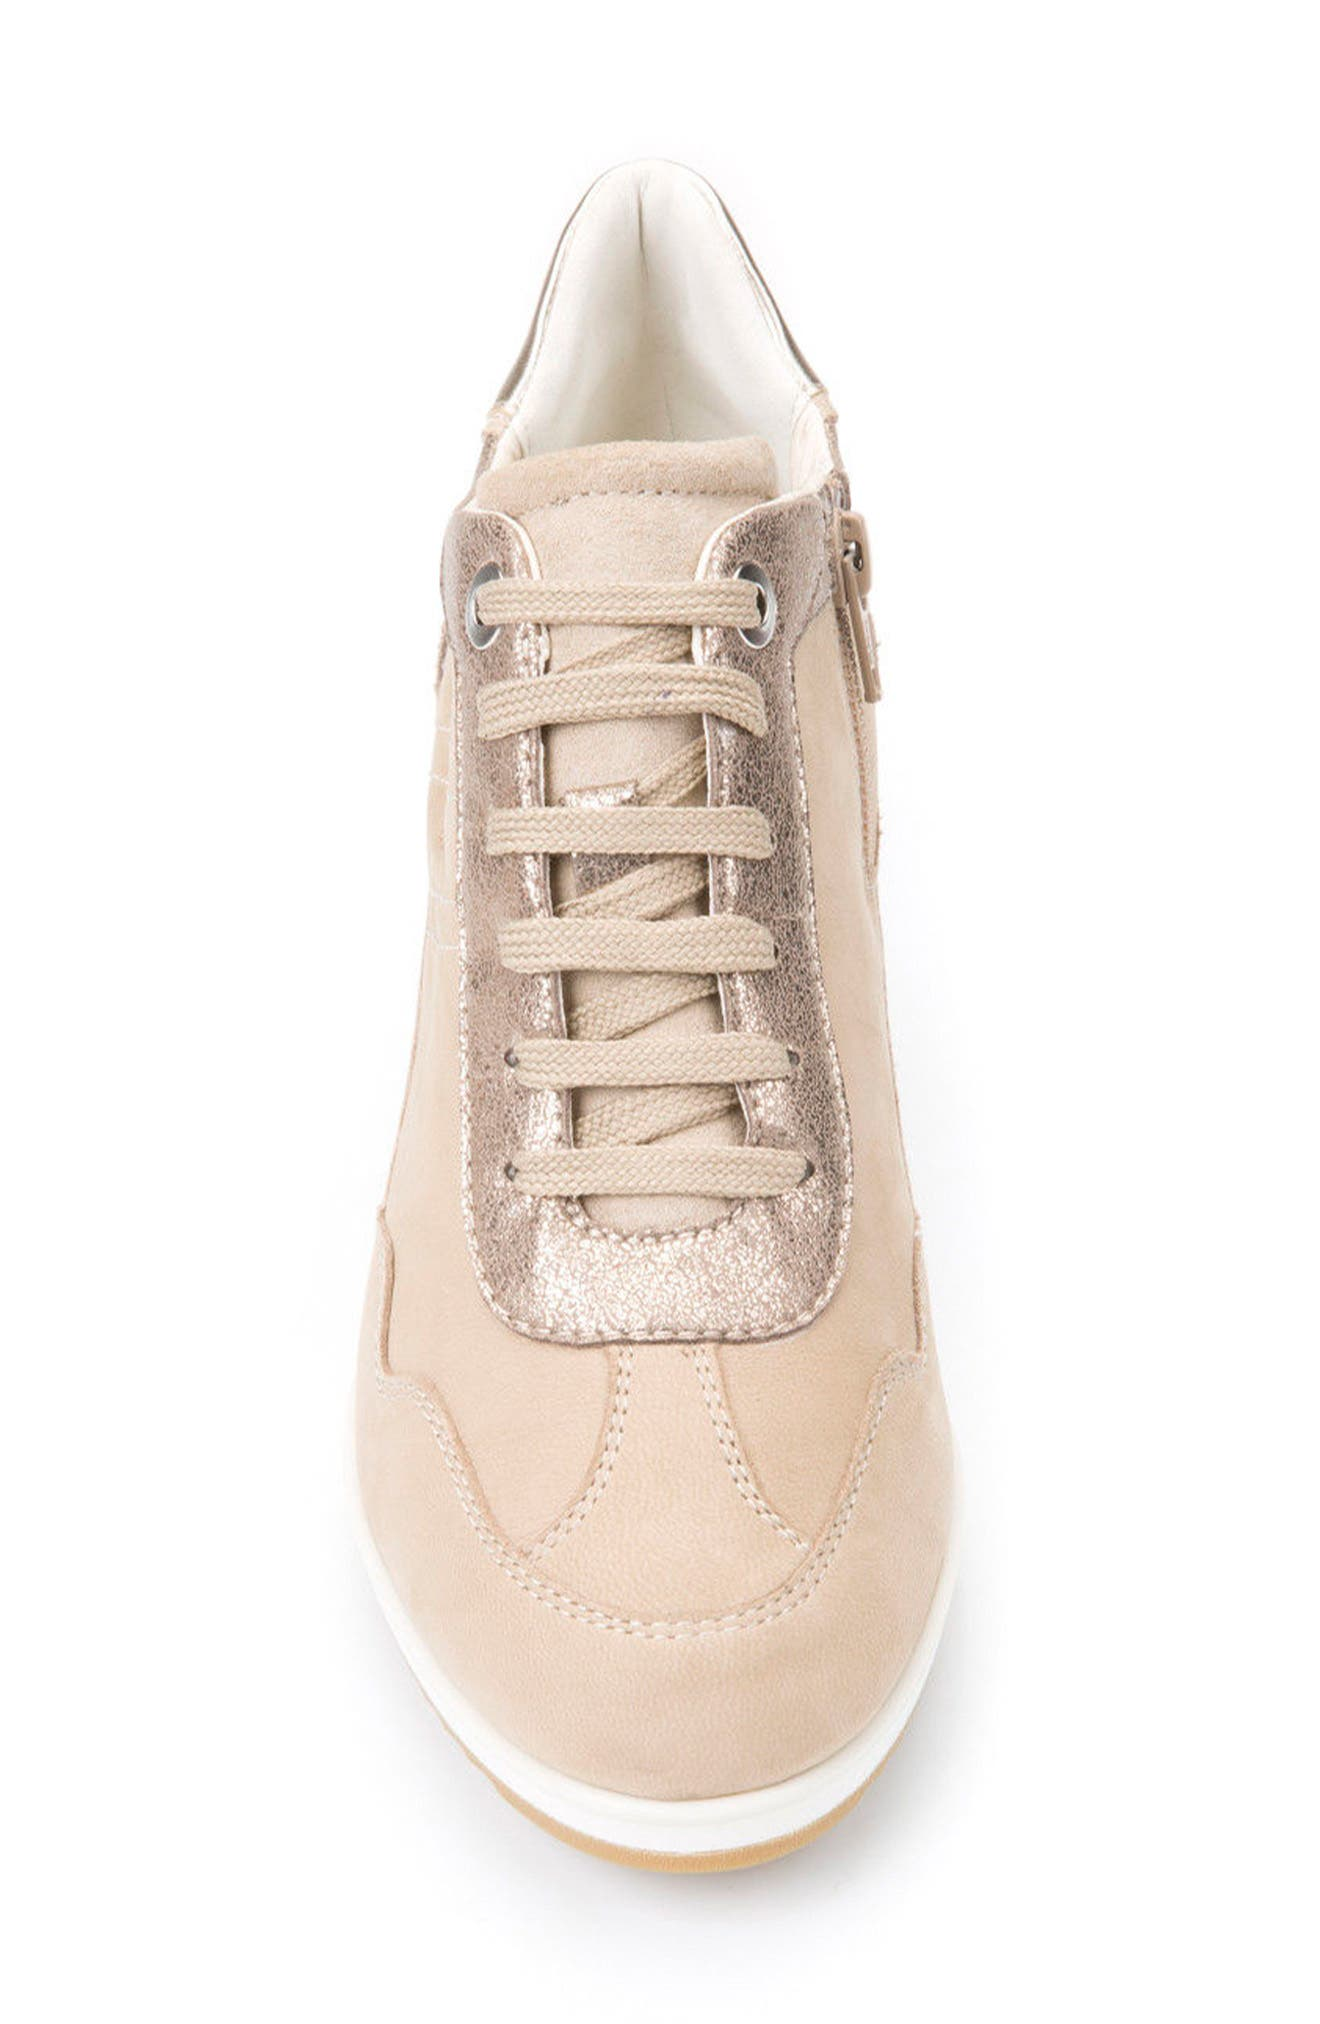 Illusion 34 Wedge Sneaker,                             Alternate thumbnail 4, color,                             SAND LEATHER